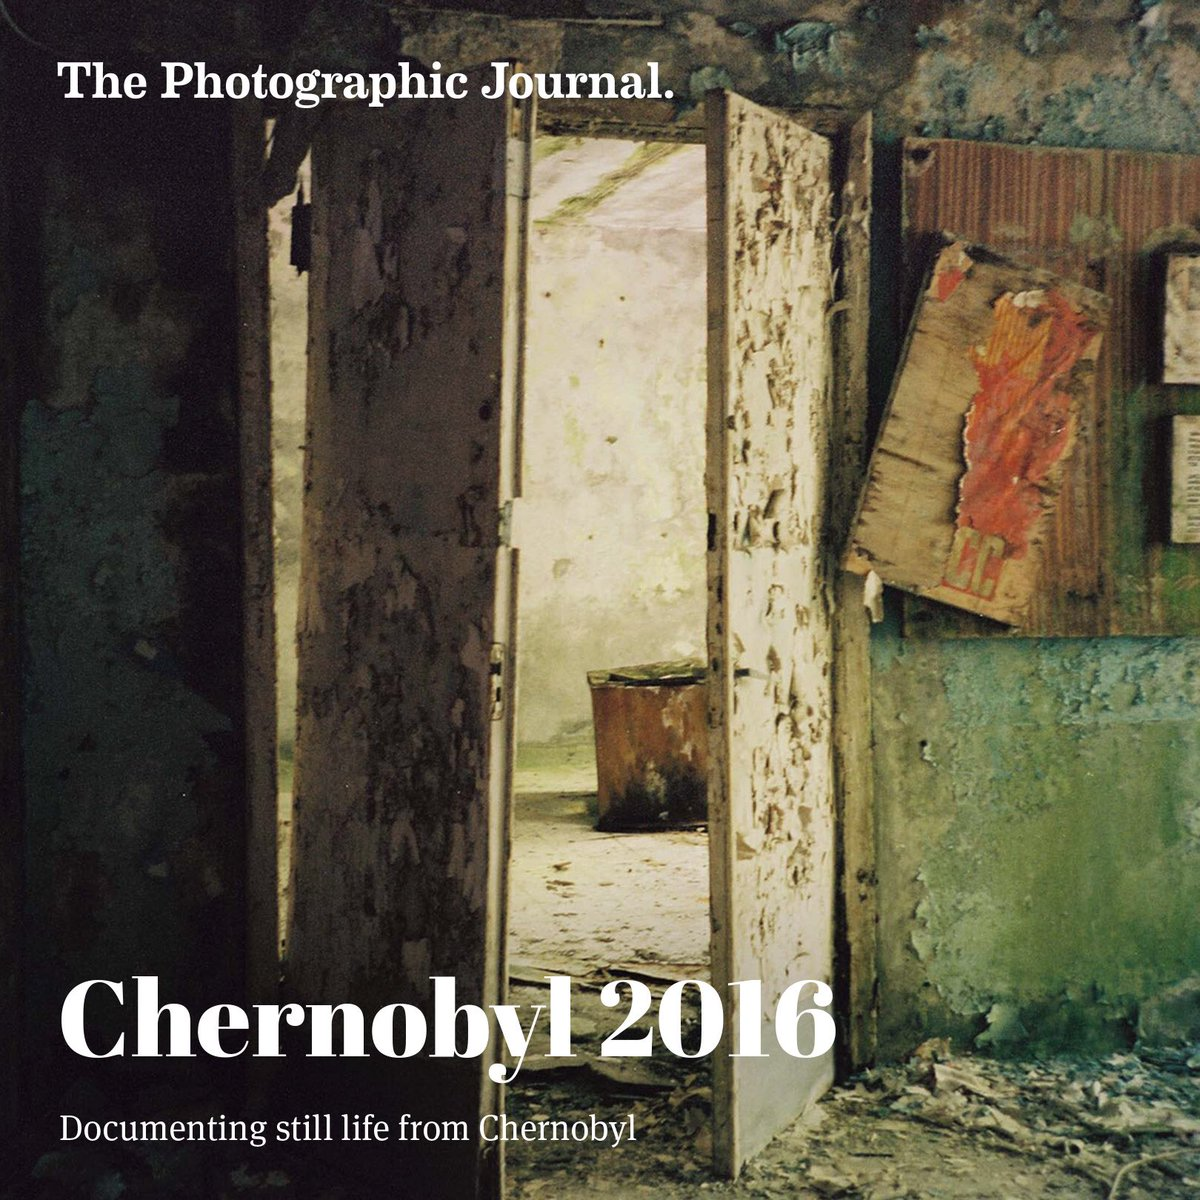 photographic journal tpj twitter today s new essay is from barbara aruschin take a look thephotographicjournal com essays chernobyl 2016 pic com ybzvcaefzl